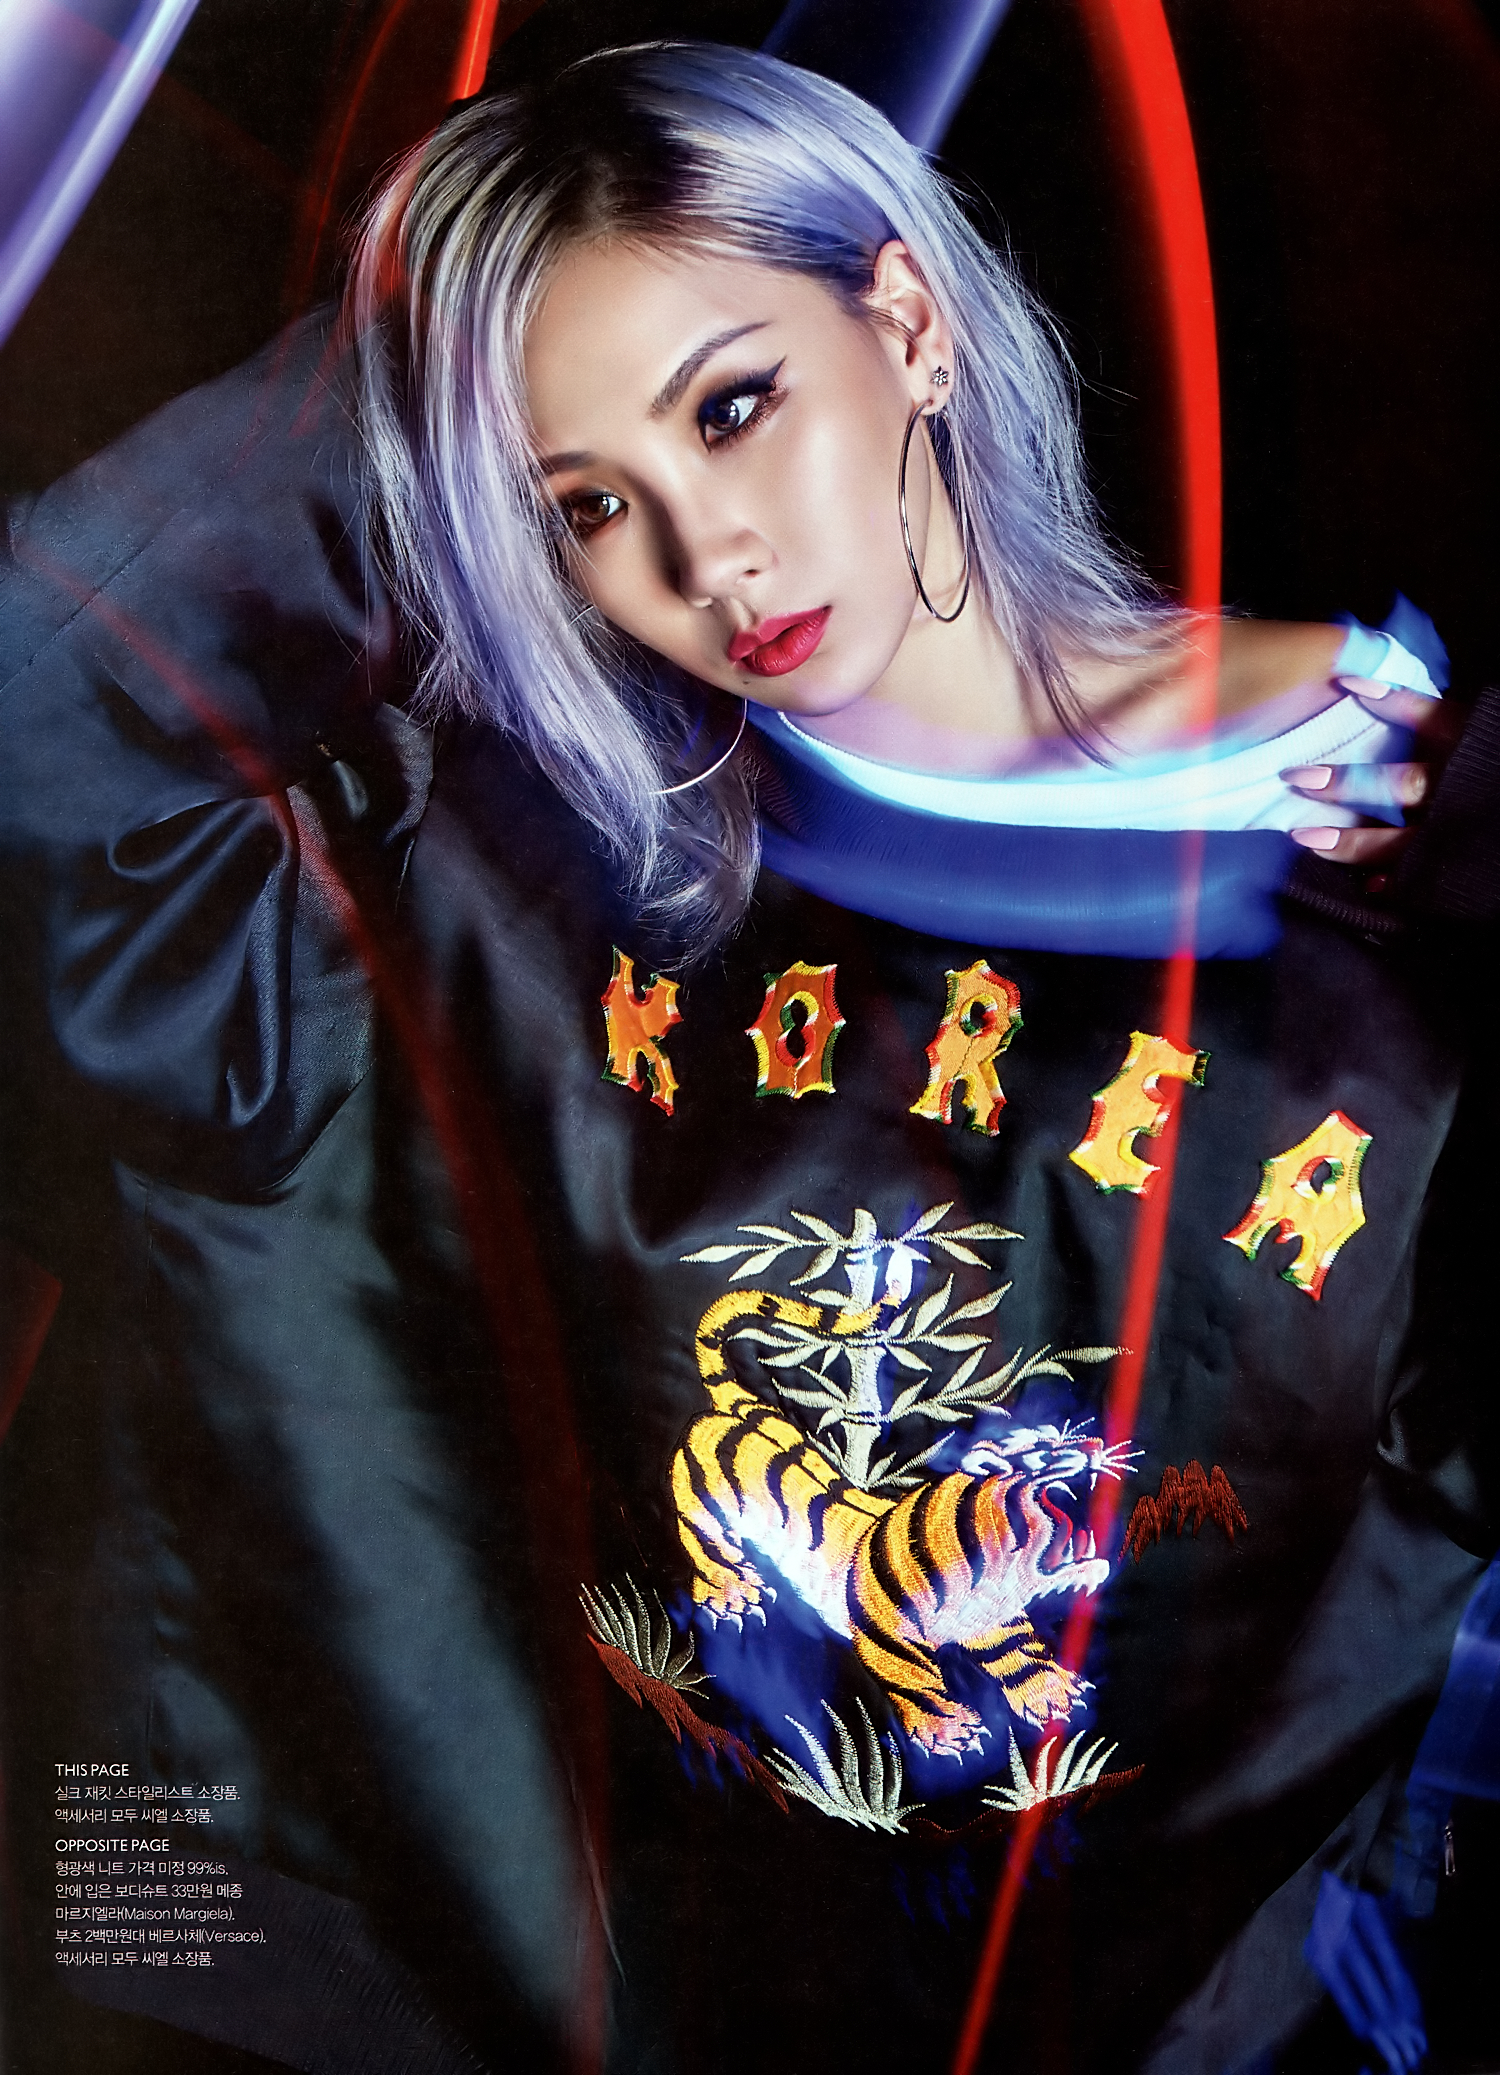 Cl Android Iphone Wallpaper 61434 Asiachan Kpop Image Board